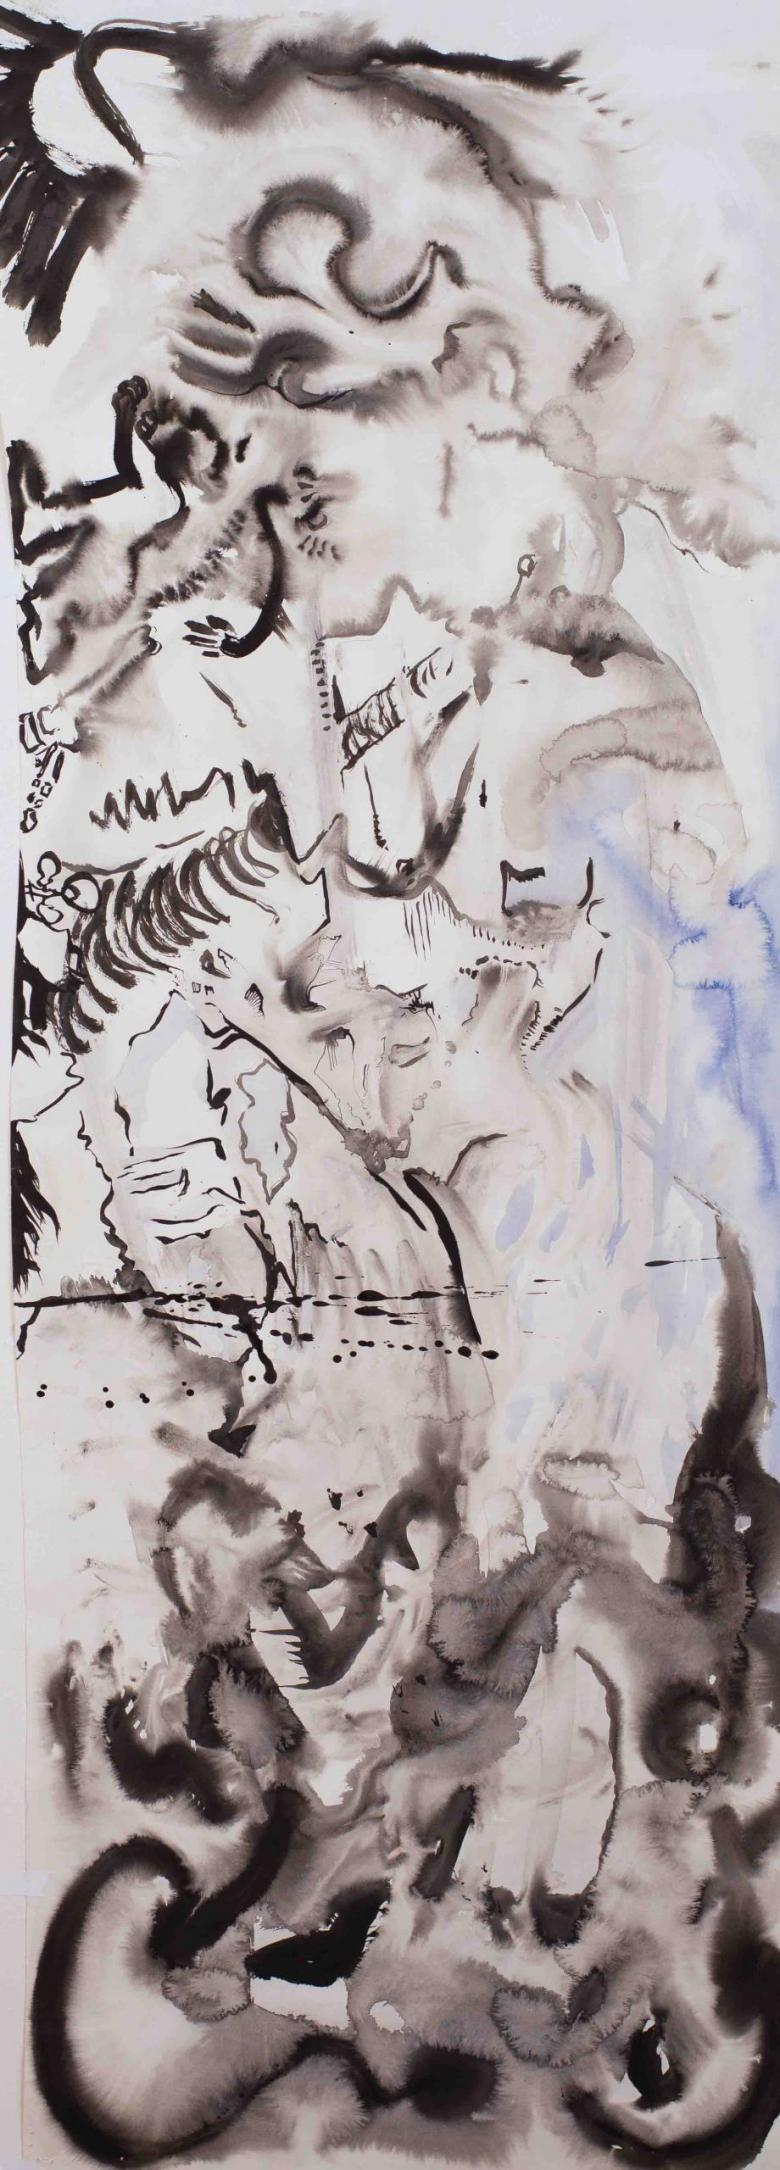 Abstract Lansdcape. Sumi ink on high quality acid-free art paper, 60.5x22in - 151x56cm. Fig. 319